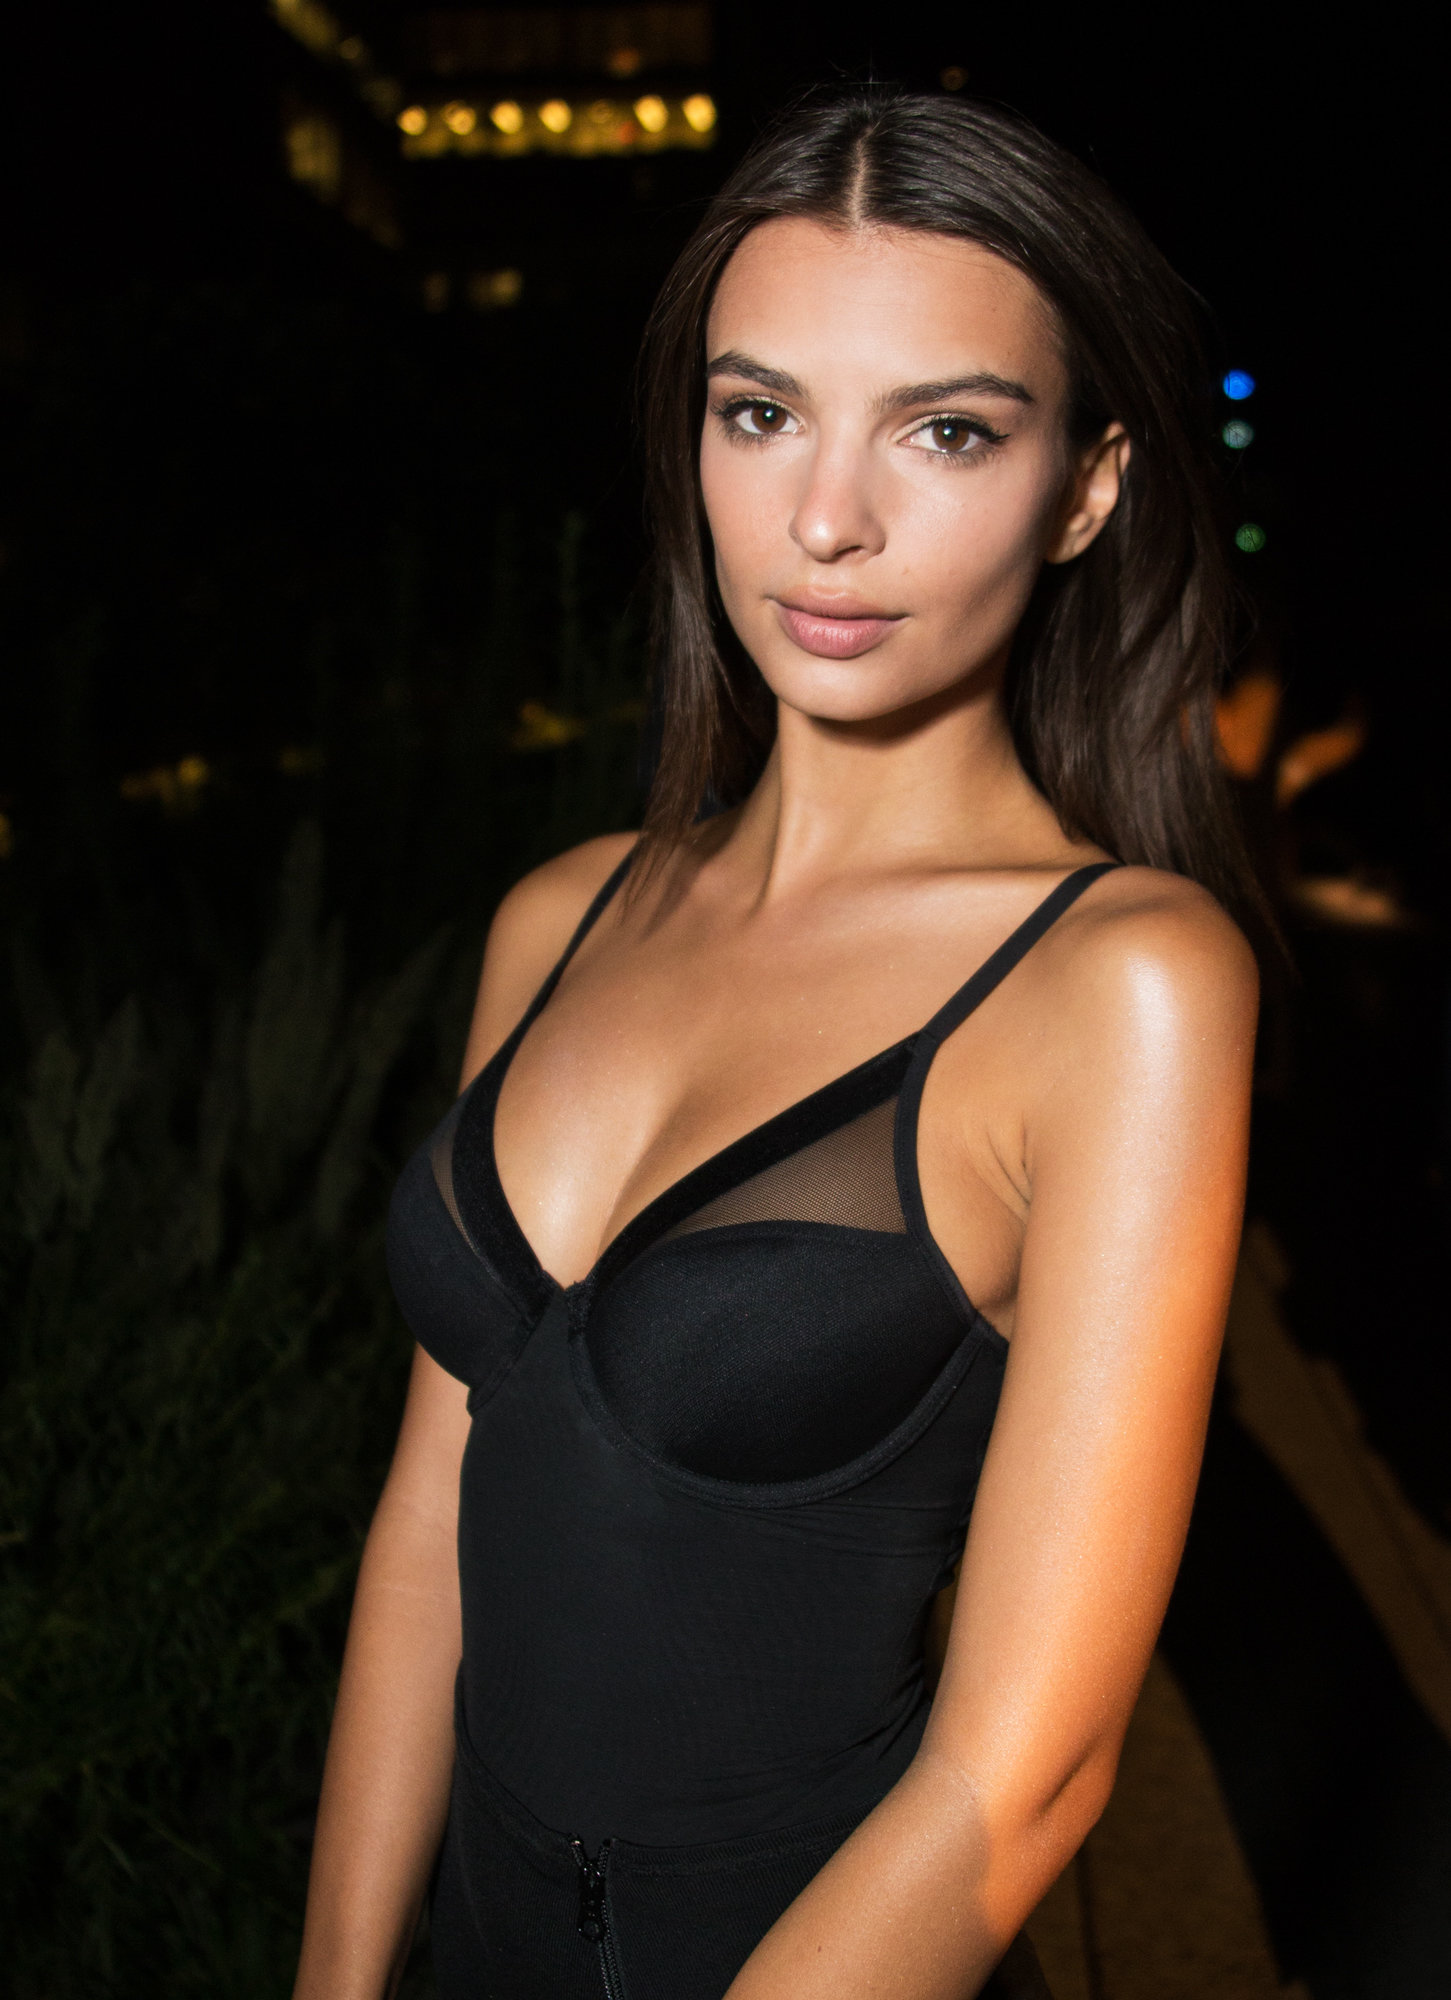 Emily Ratajkowski - DKNY Women's SS 2017 - September 12, 2016